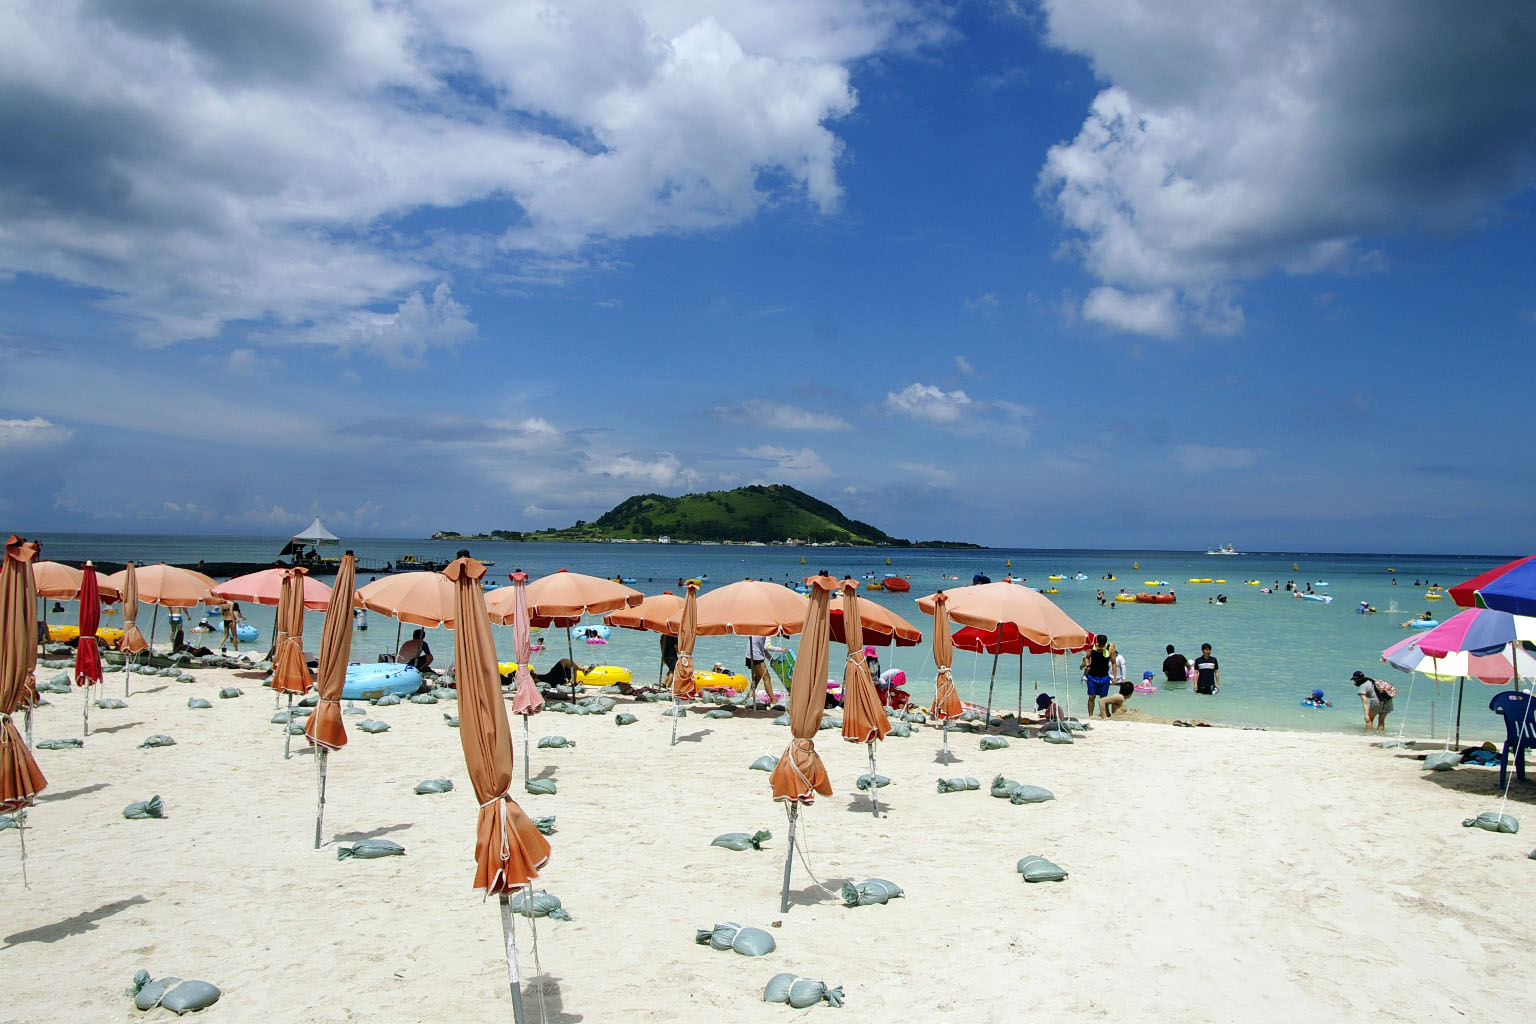 Guryongpo Beach, Korea